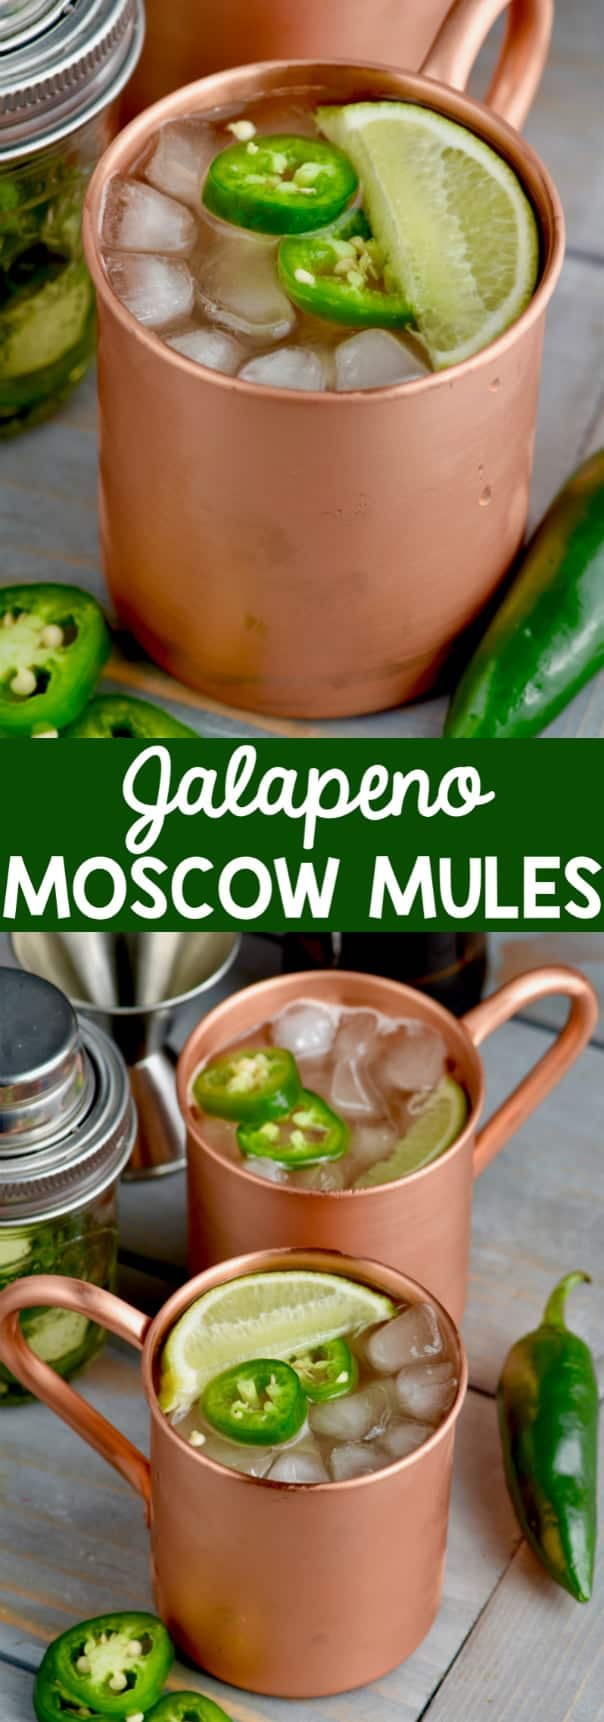 Two copper mugs filled with Jalapeño Moscow Mules topped with sliced Jalapeño and a lime.